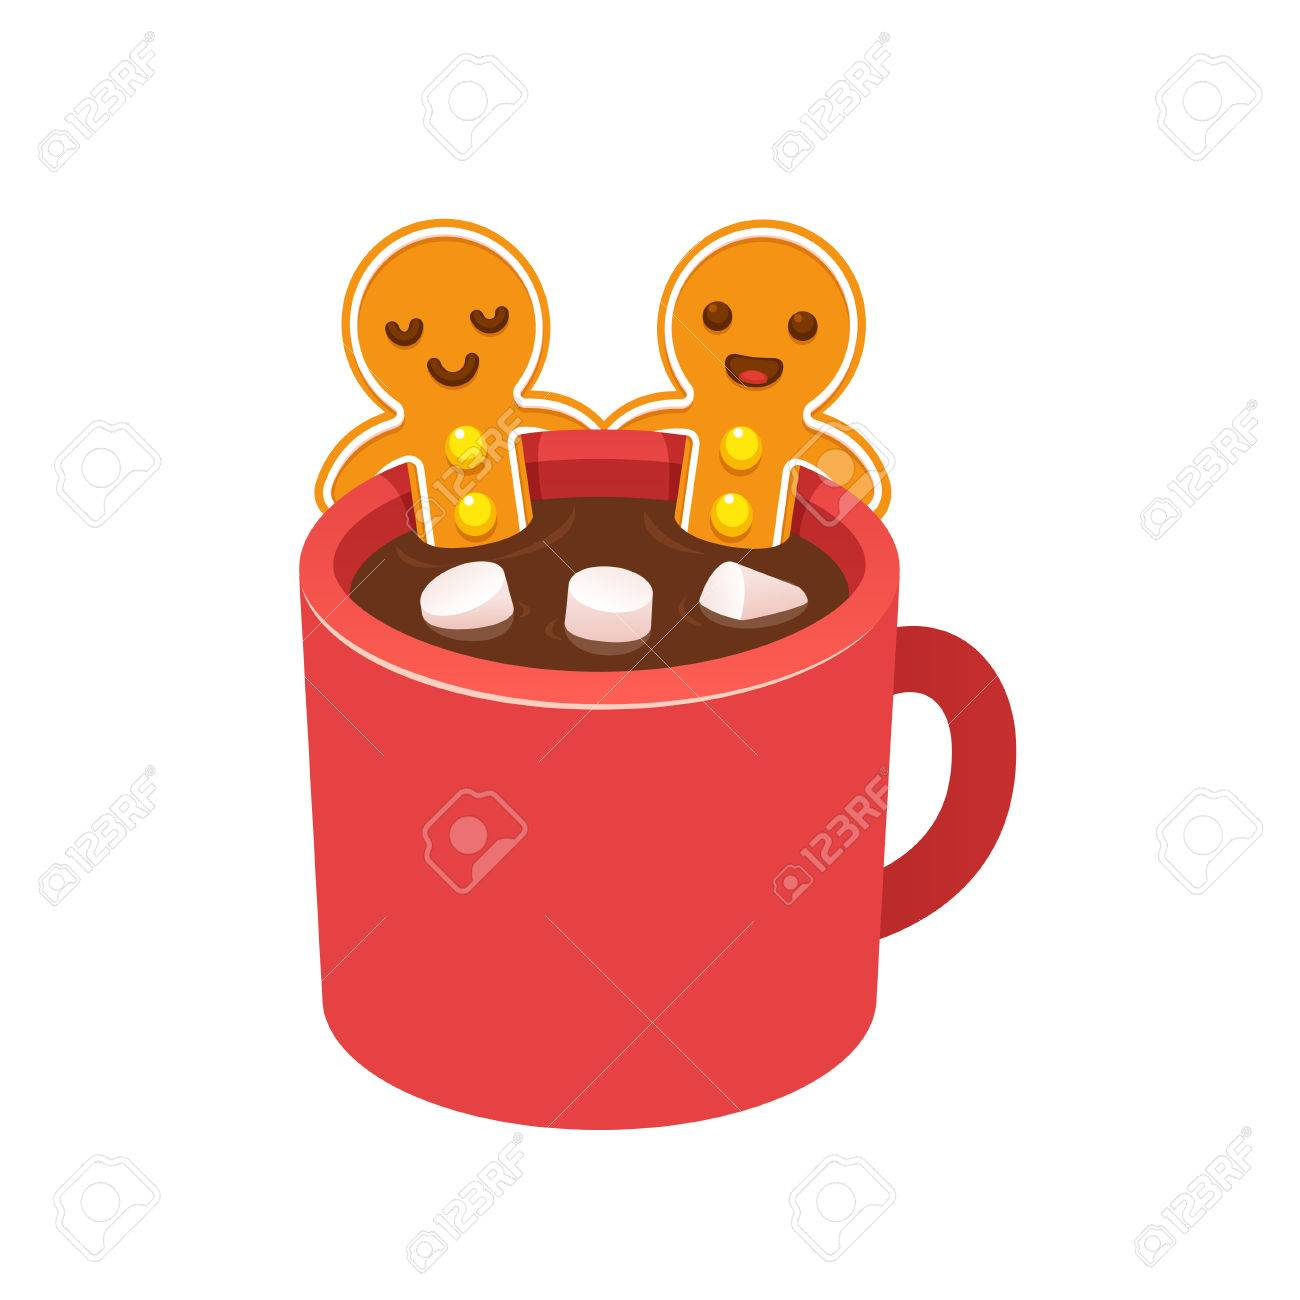 Two Gingerbread Man Cookies In Hot Chocolate Cup With Marshmallows Royalty Free Cliparts Vectors And Stock Illustration Image 67677652